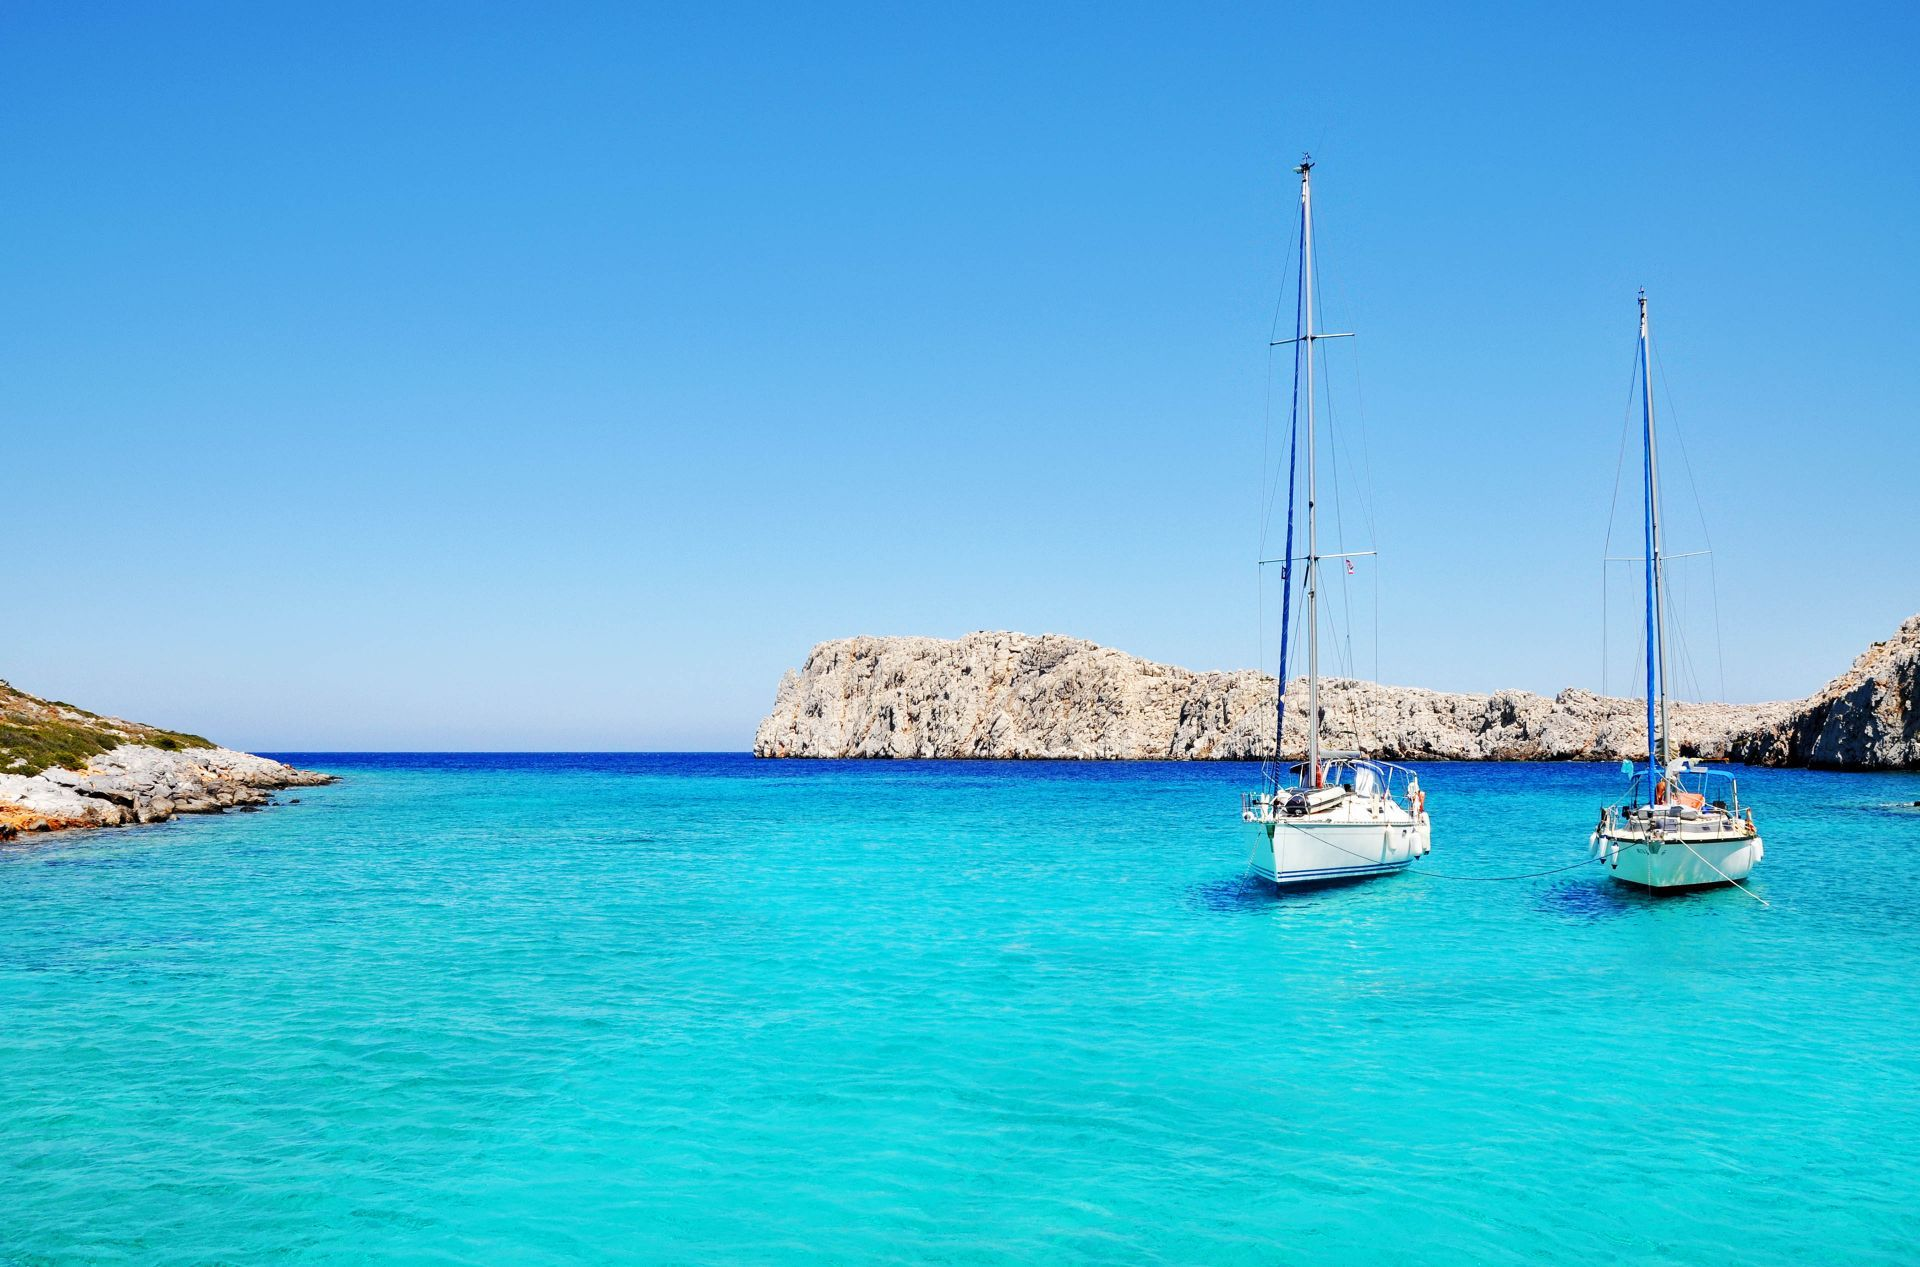 Dodecanese islands: Beaches of Astypalea island